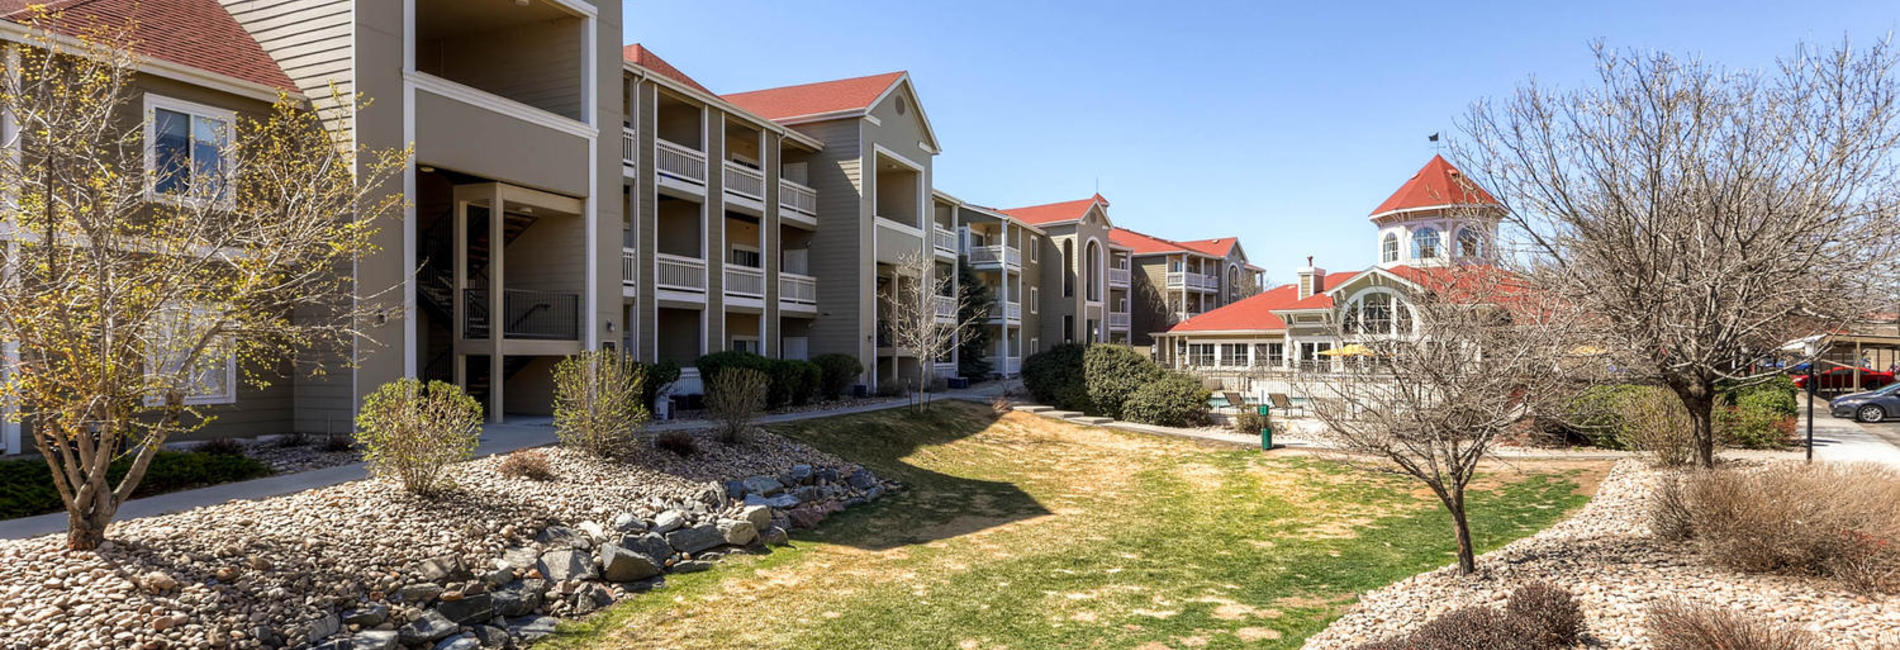 2 Bedroom Apartments In Lakewood Co ~ cryp.us